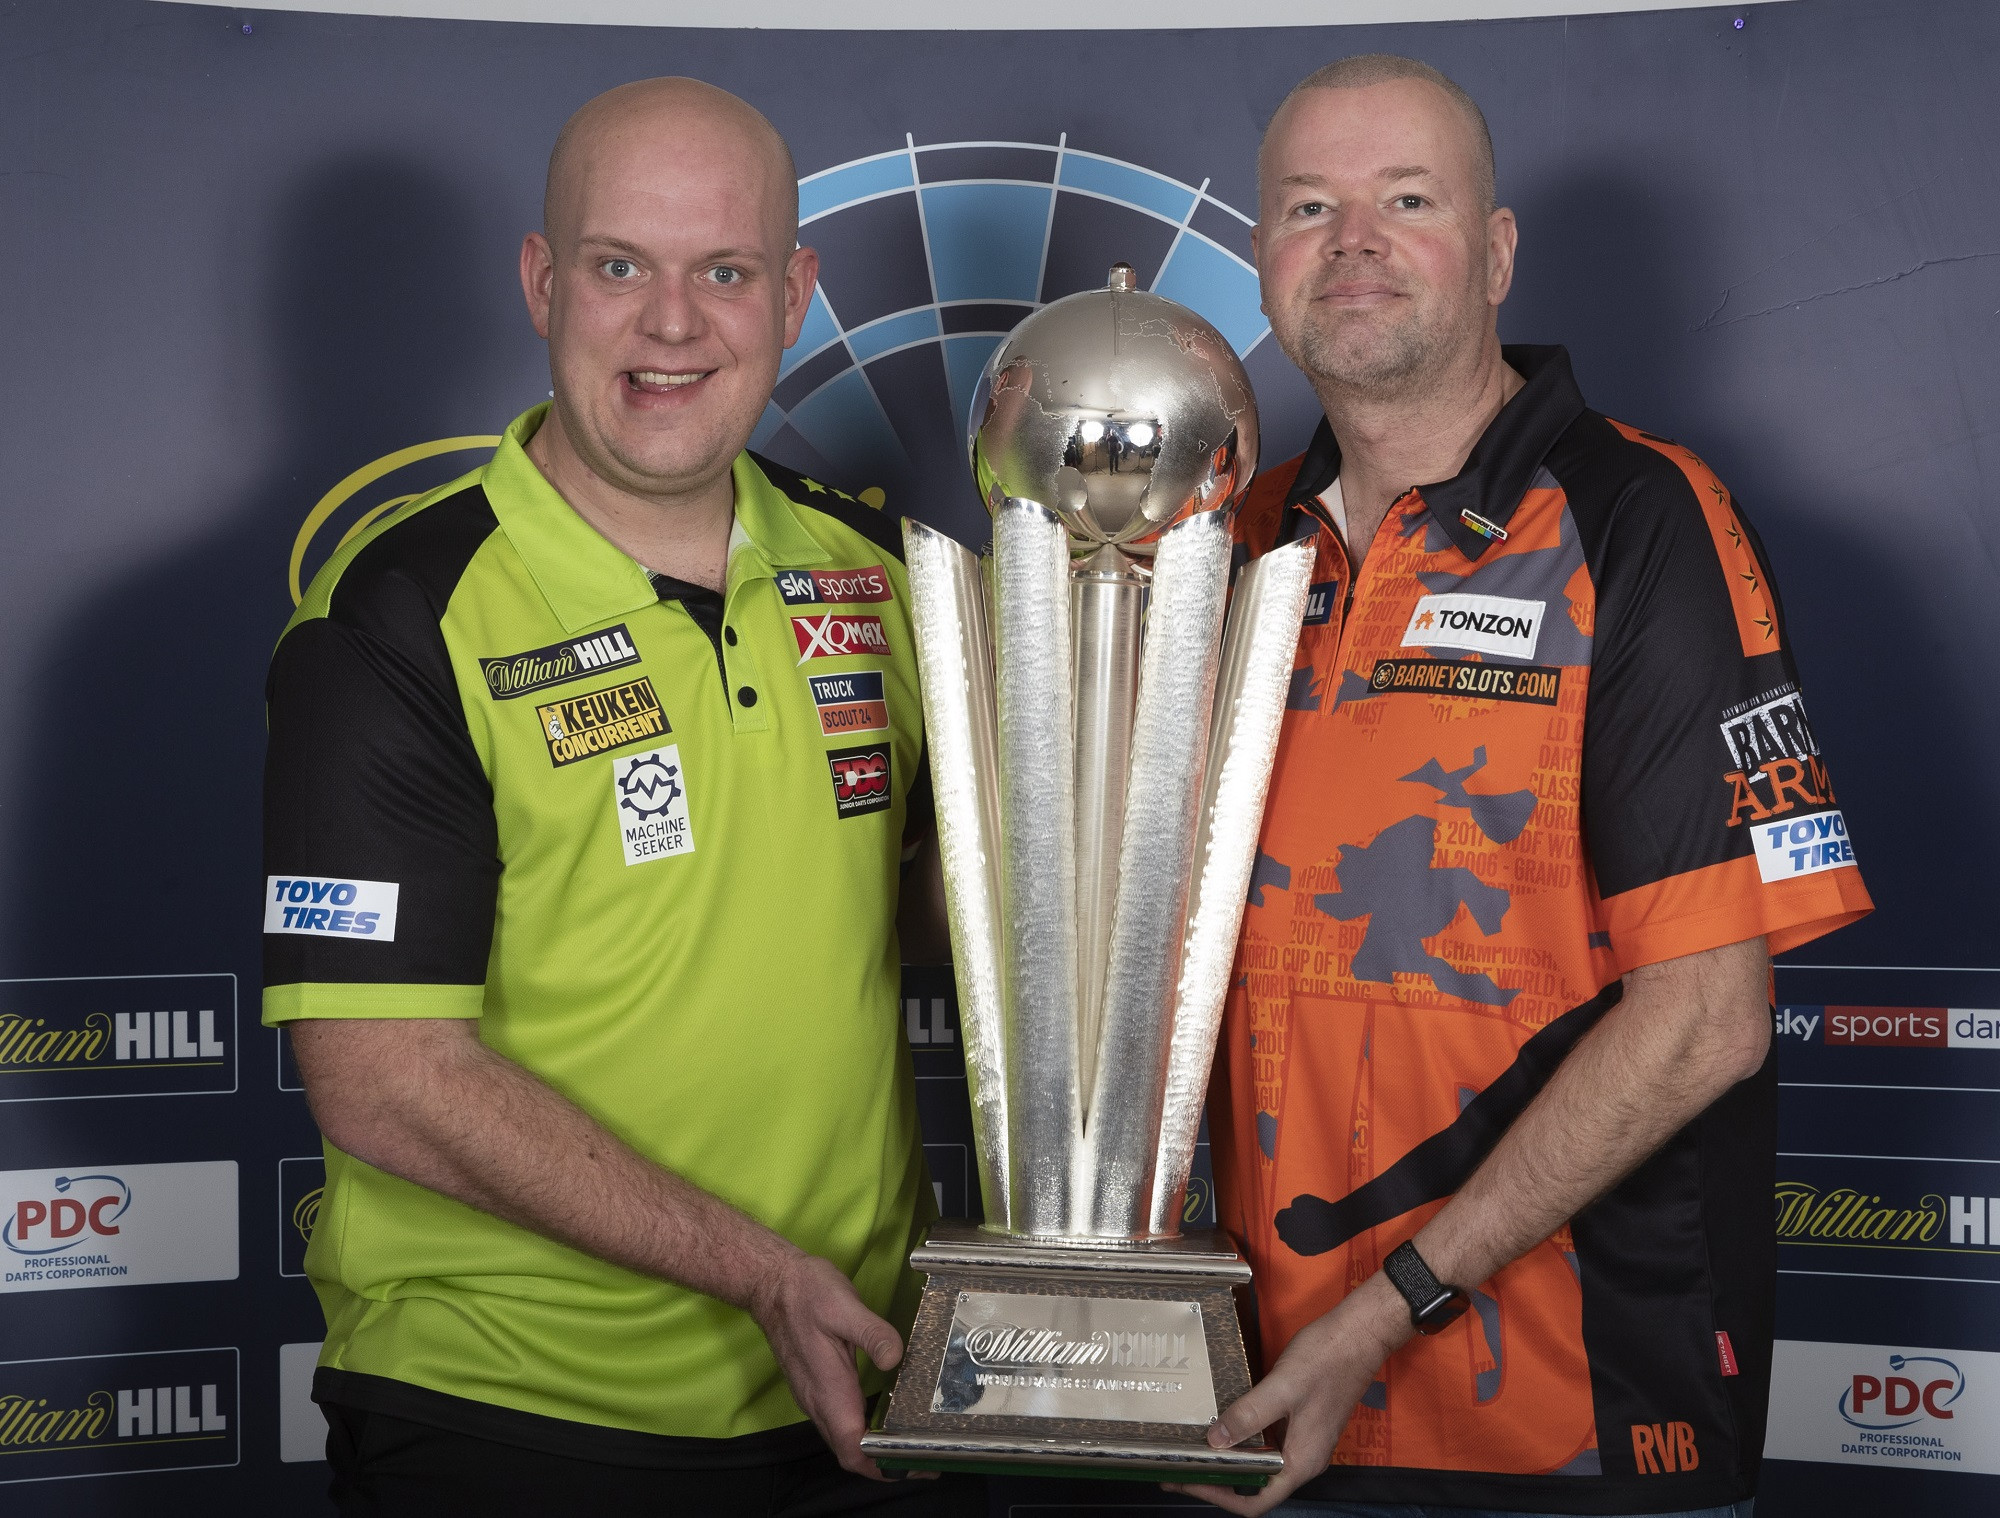 Current PDC World Champion Michael Van Gerwen, left, pictured with the trophy that he will defend at the Championships that start on Friday alongside fellow Dutchman and past winner Raymond Van Barneveld, whose last Championship this will be ©PDC